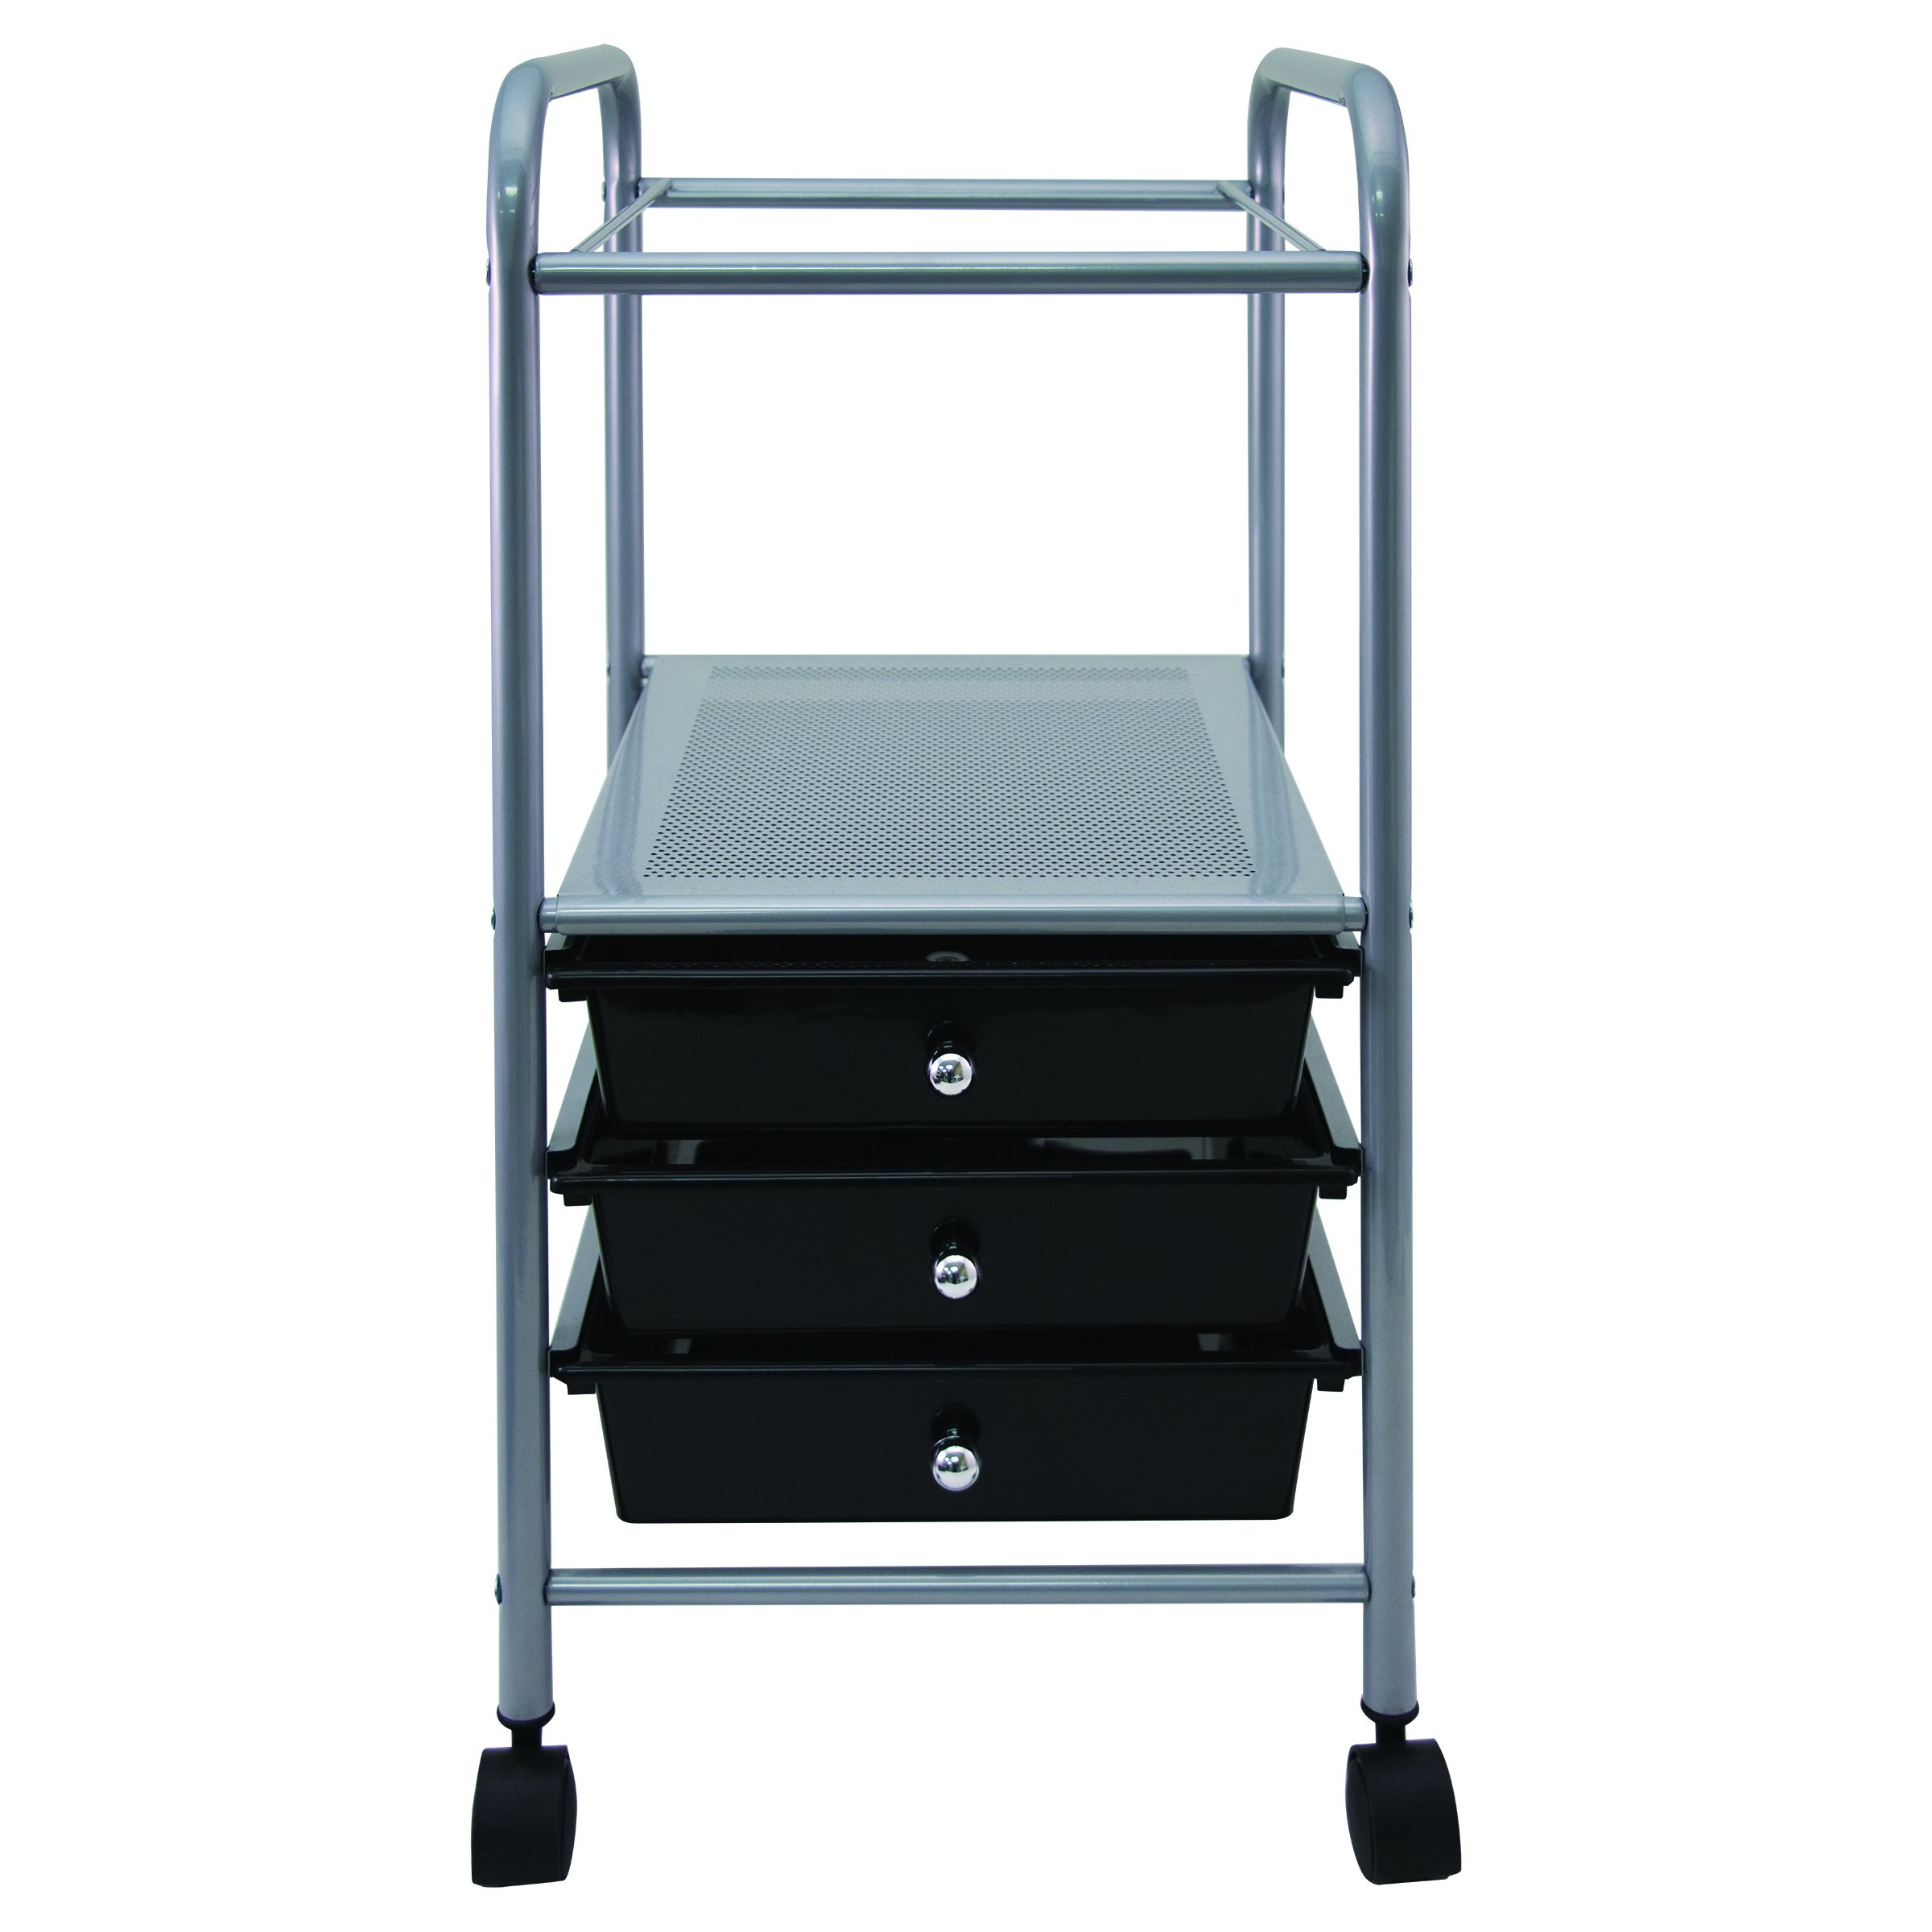 Vertiflex Slim-Profile Mobile File Cart with 3 Drawers, 15.7'' x 13'' x 26.25'', Black/Silver (VF53037) by Vertiflex Products